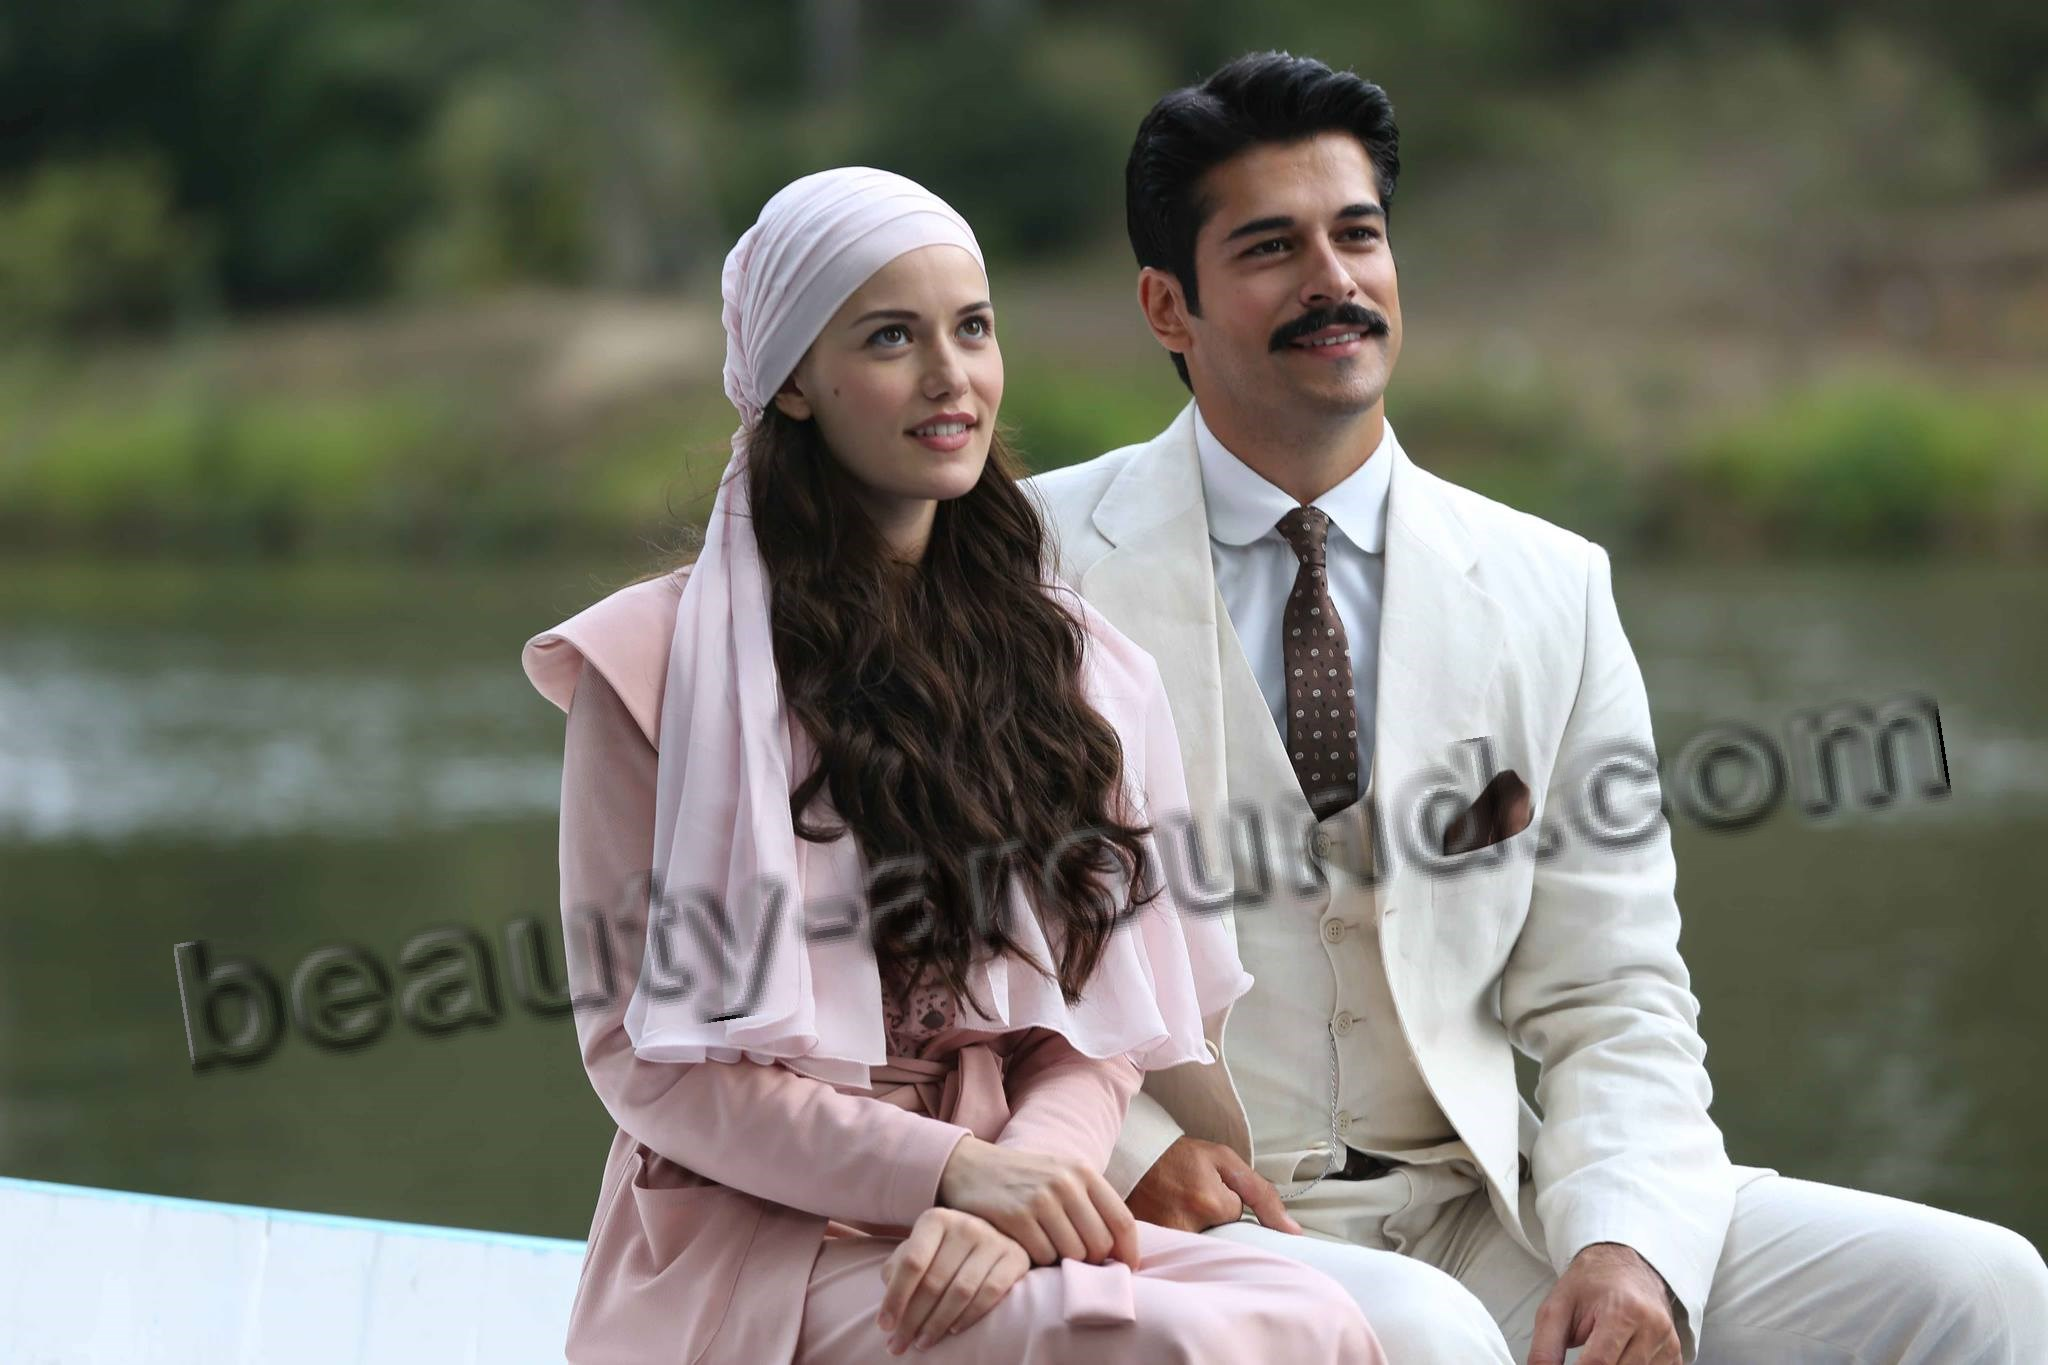 Fahriye Evcen and Burak Ozcivit photo